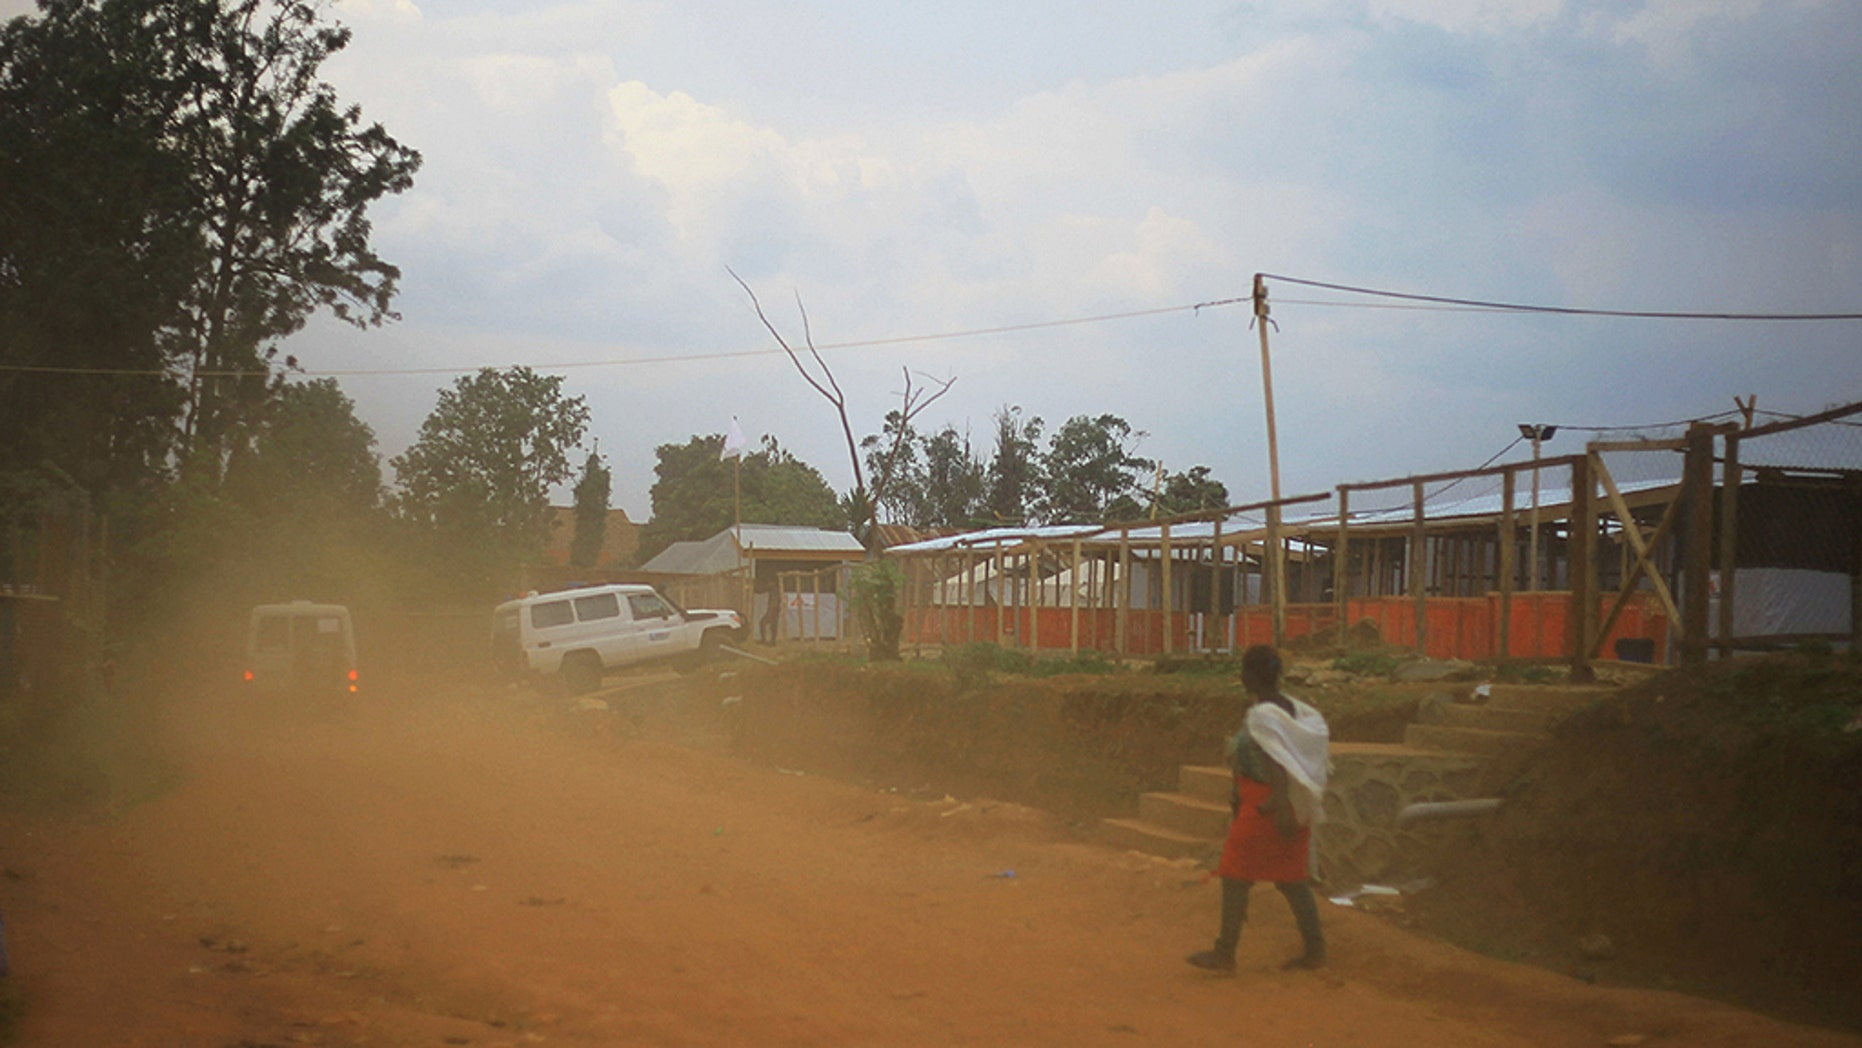 Ambulances drive into an attacked ebola treatment center during protest by demonstrators over their exclusion from the presidential election in Beni, Democratic Republic of the Congo.